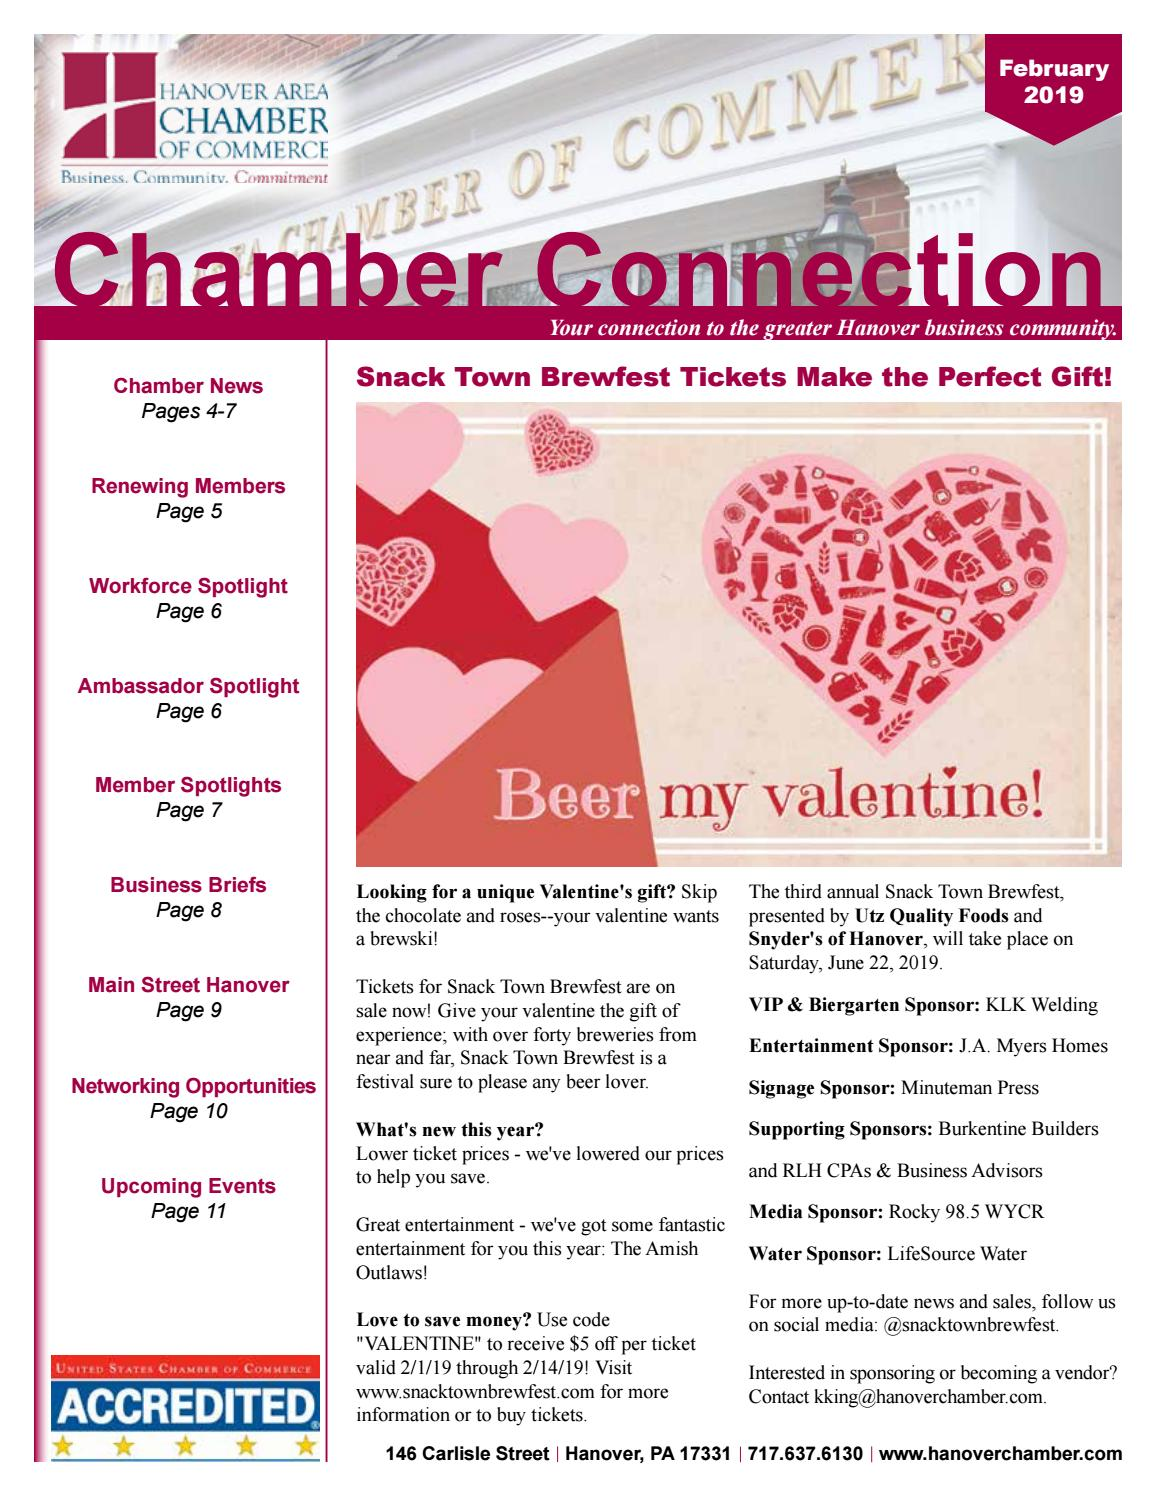 La Cucina Restaurant Hanover Pa February 2019 Newsletter By Hanover Area Chamber Of Commerce